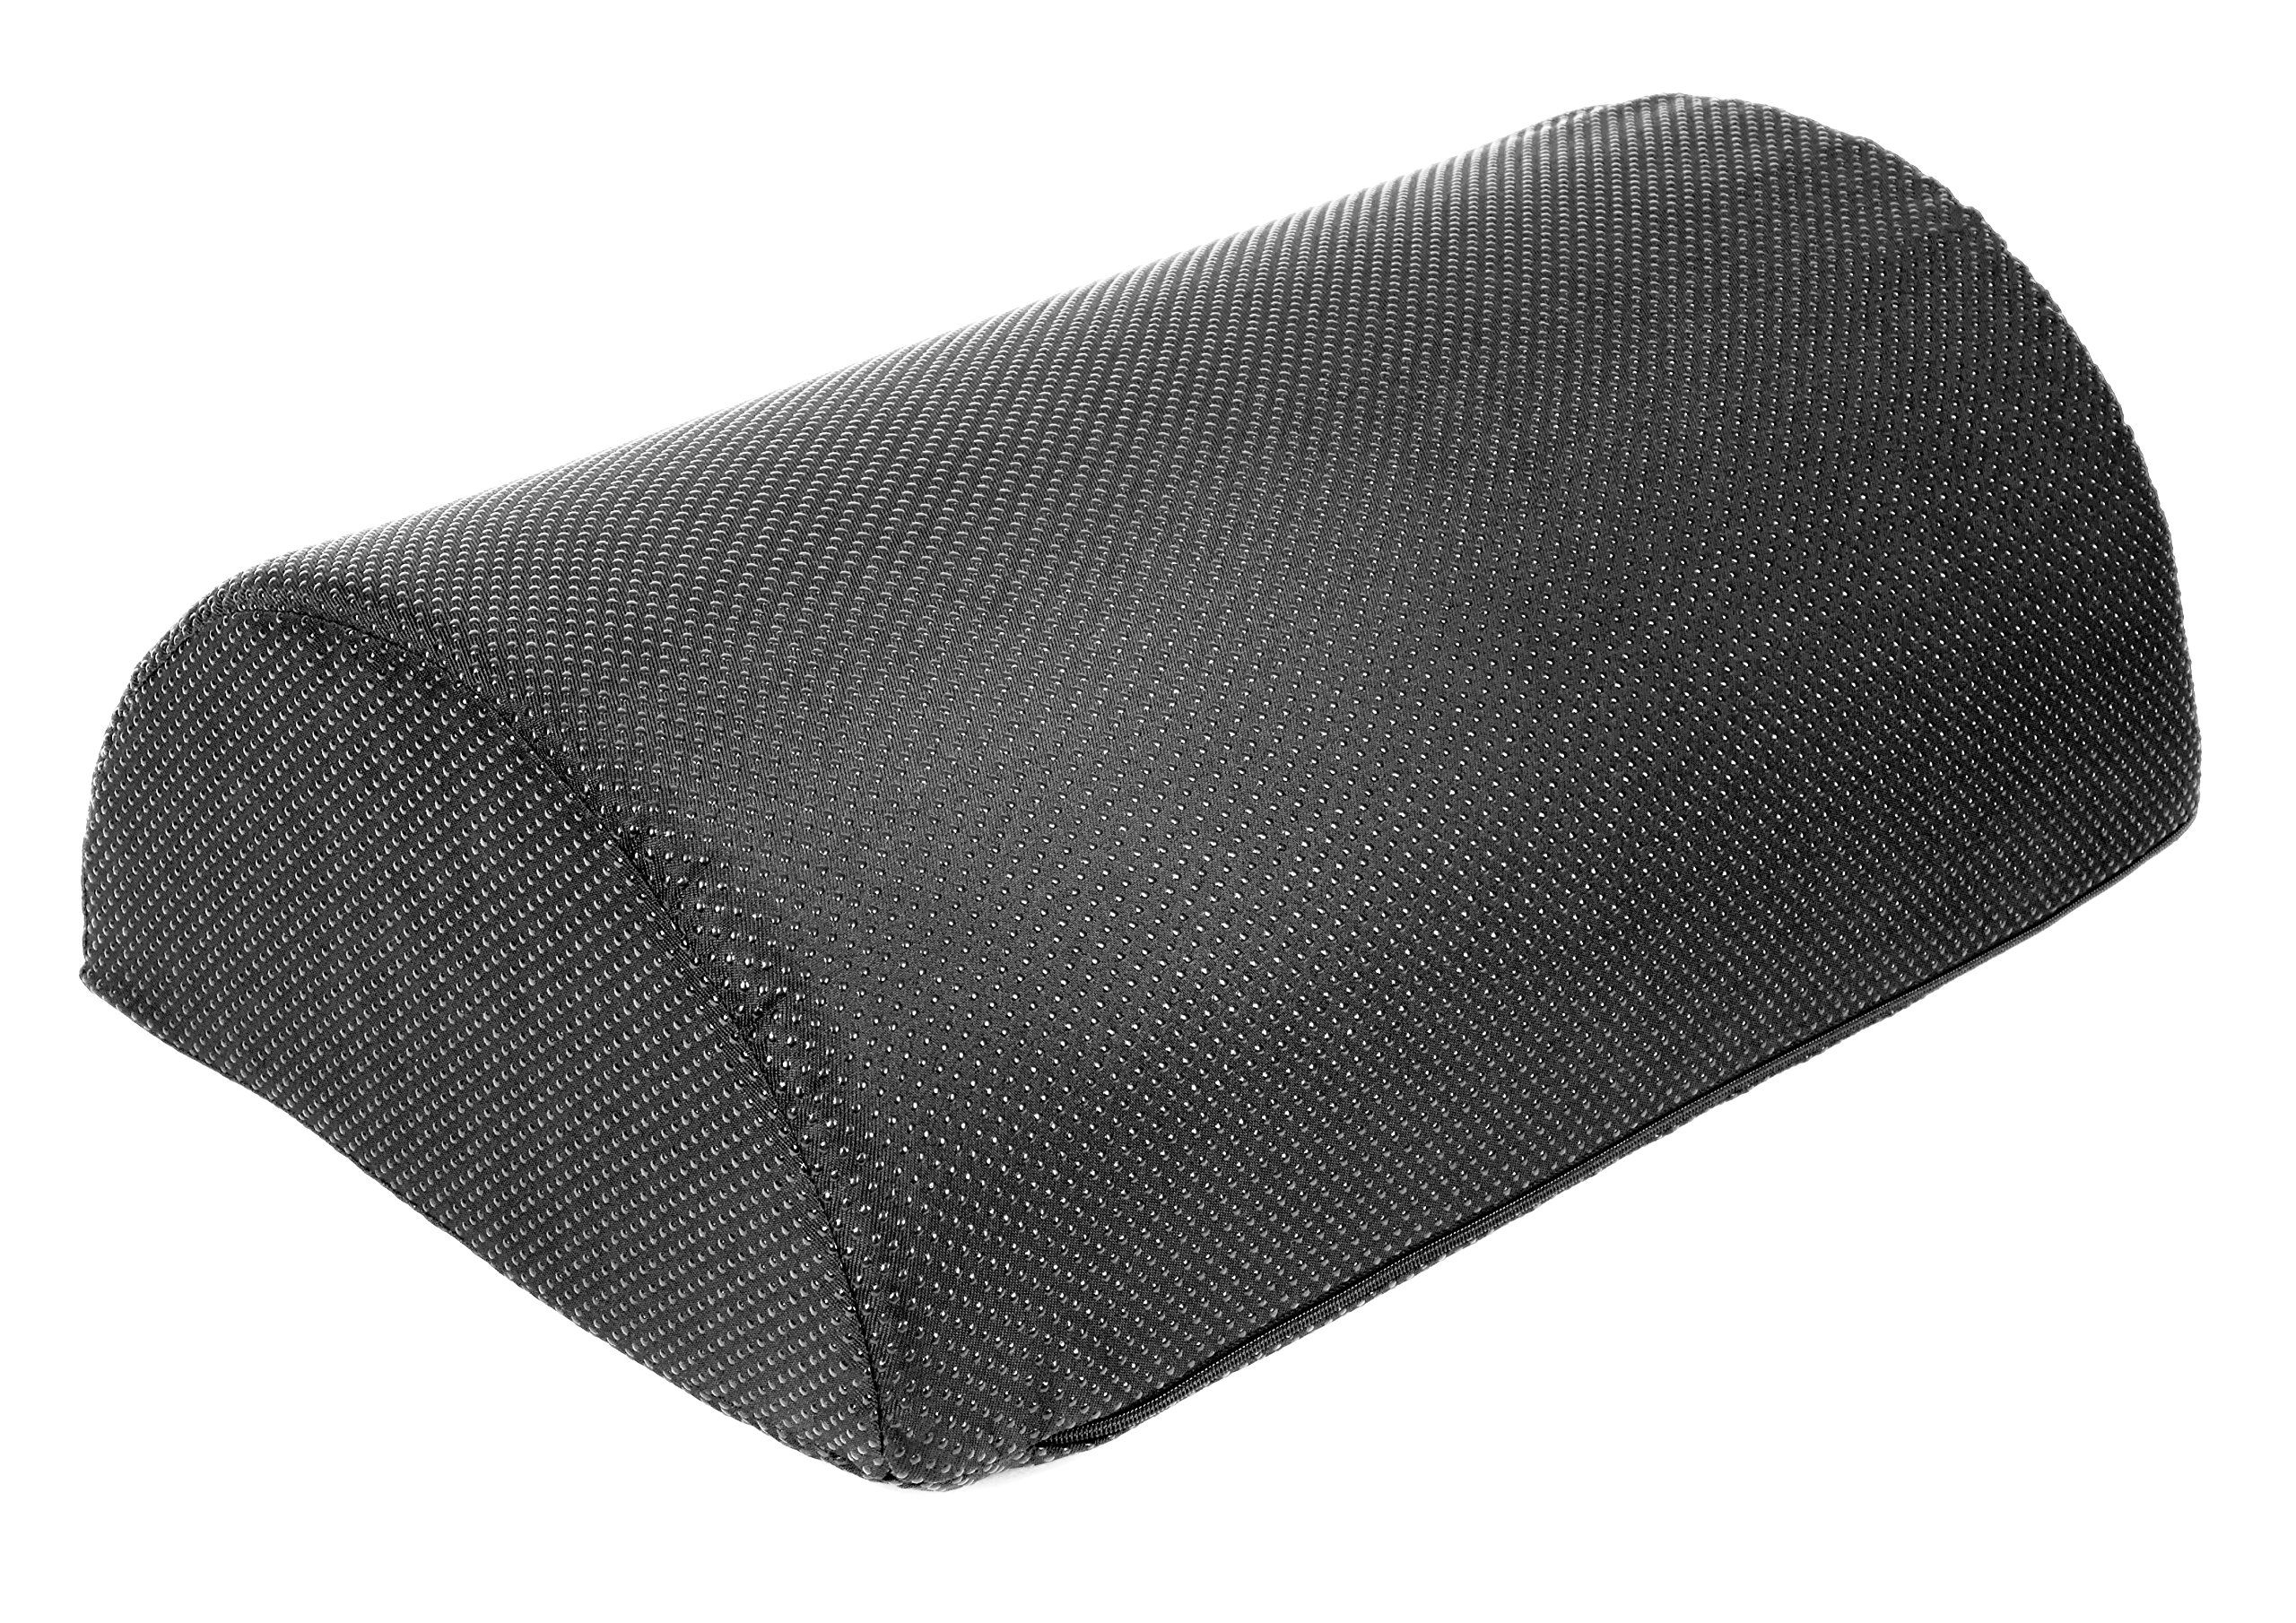 Foot Rest Cushion, Half Cylinder Design, for Home and Office (Large 17.7 '' Long by 11.8'' Wide by 6'' Tall)